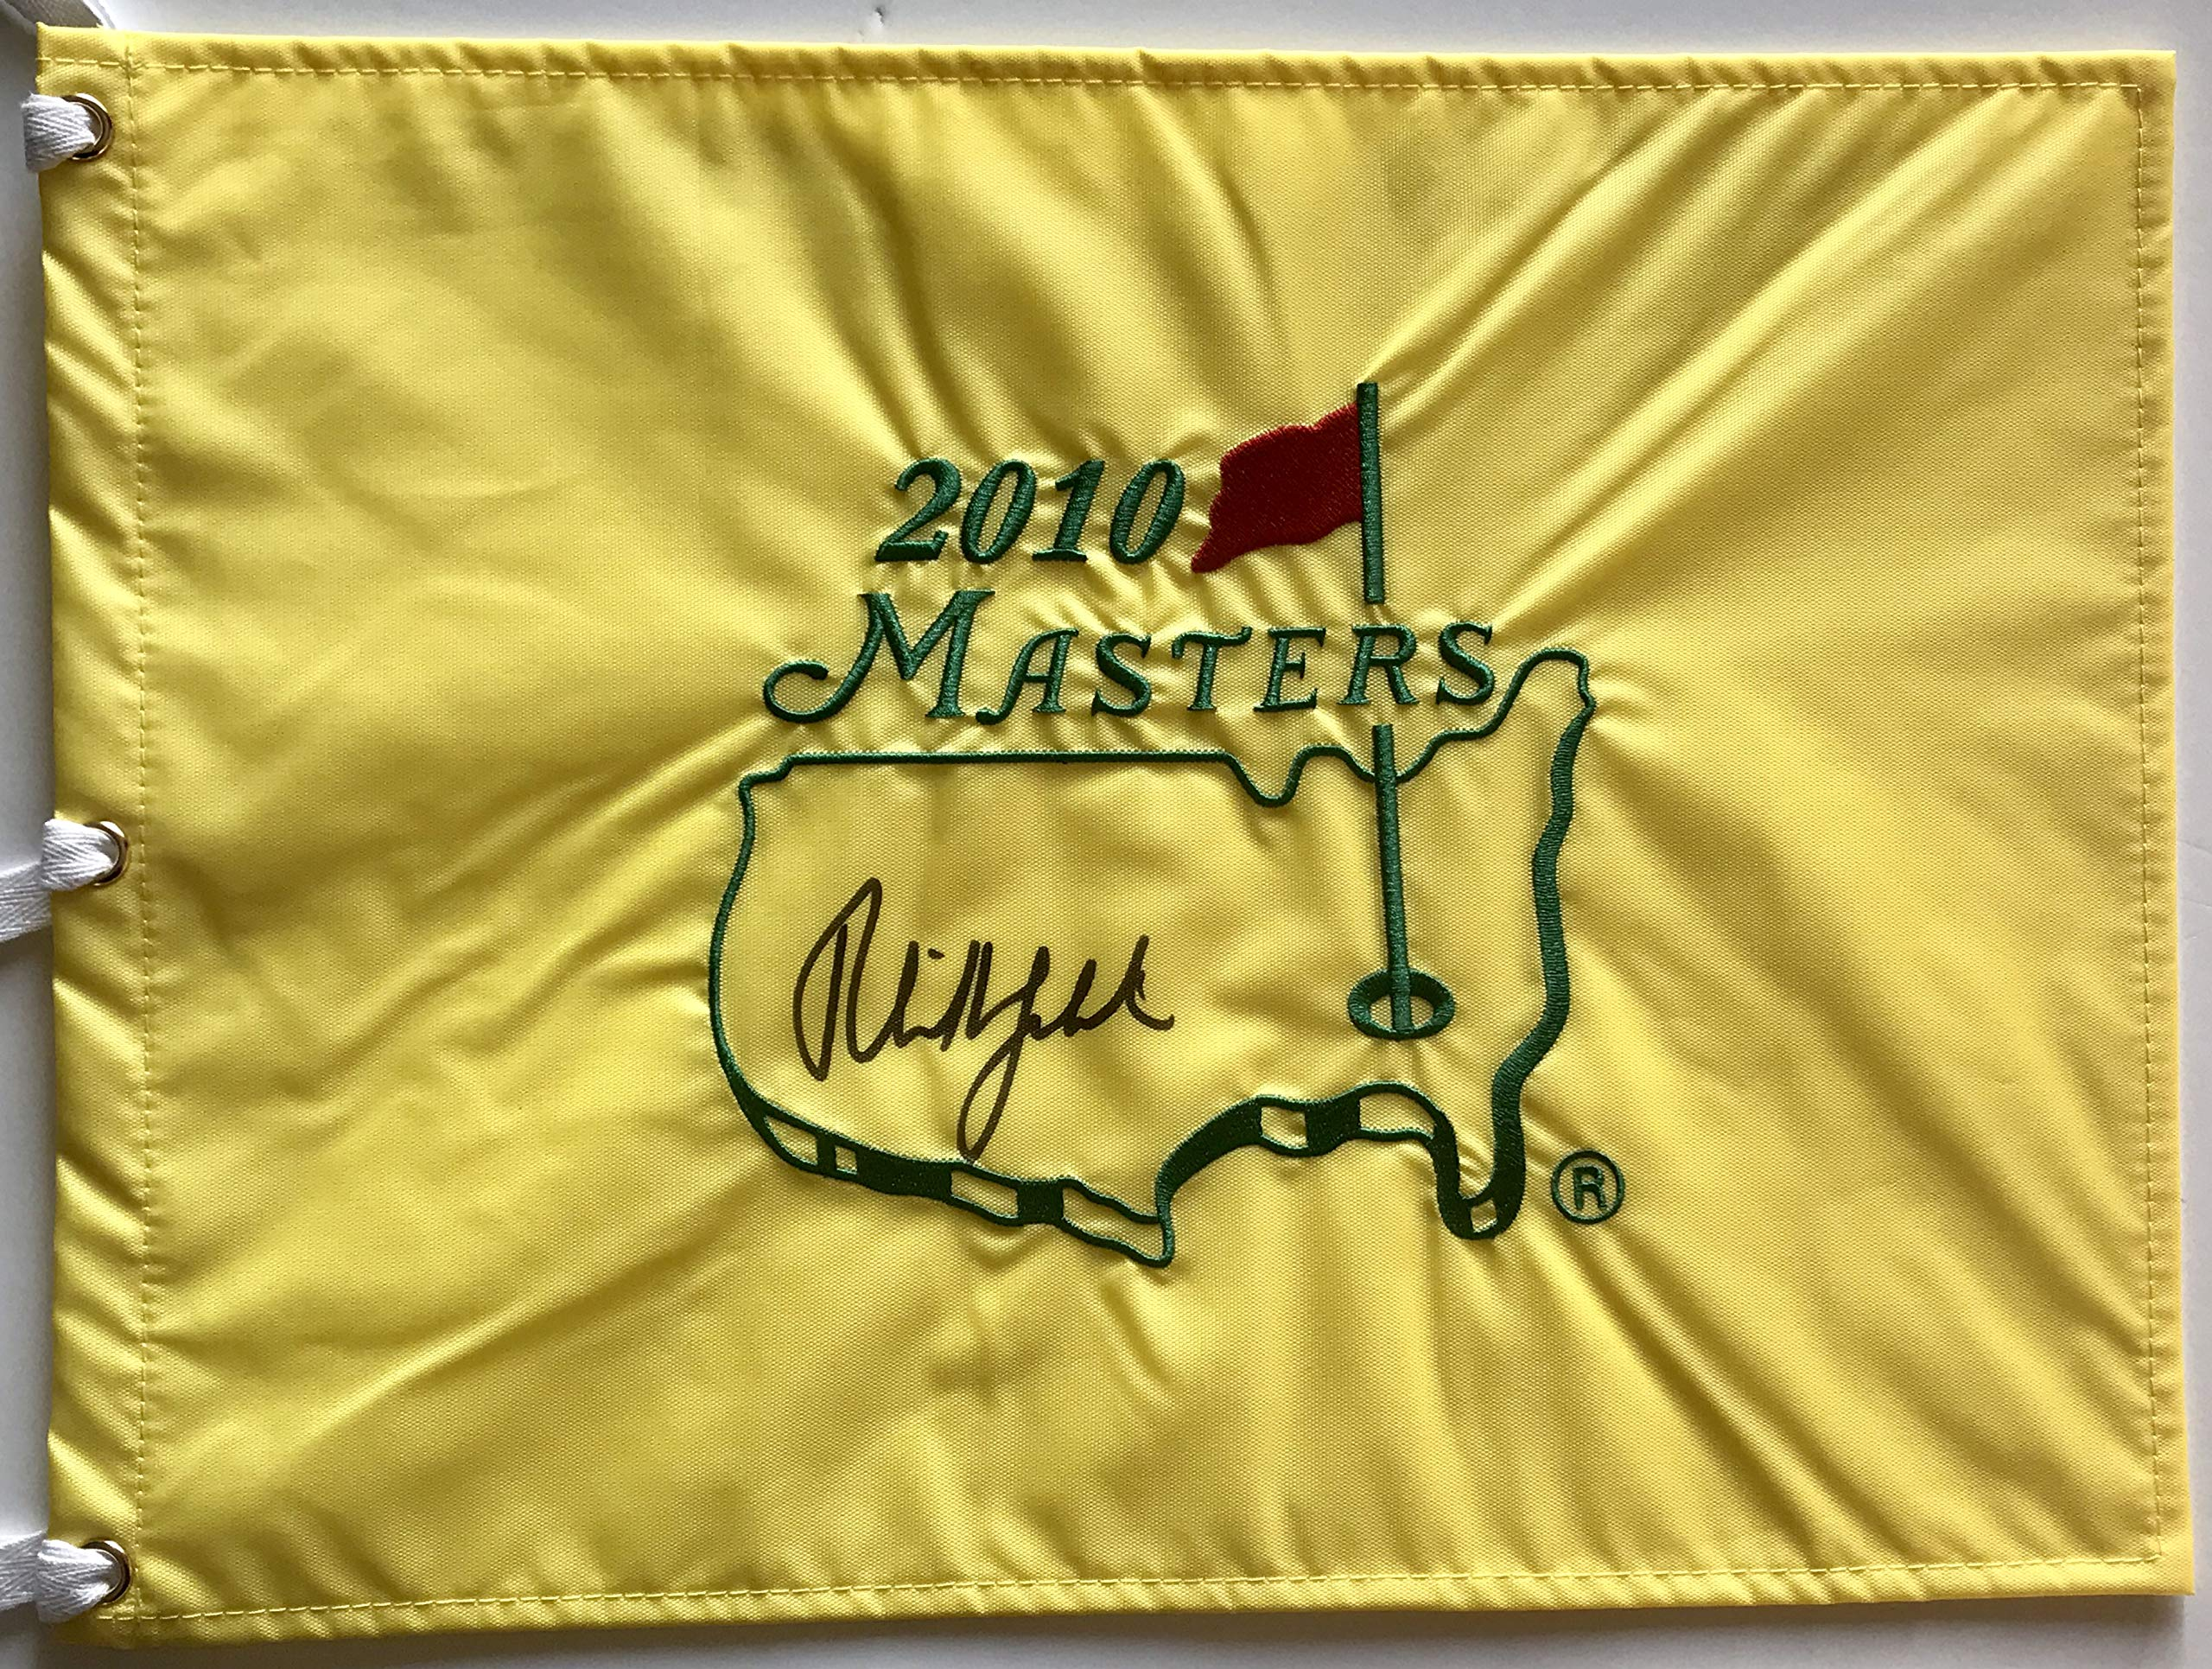 Phil Mickelson signed 2010 Masters golf flag 2018 ryder cup pga